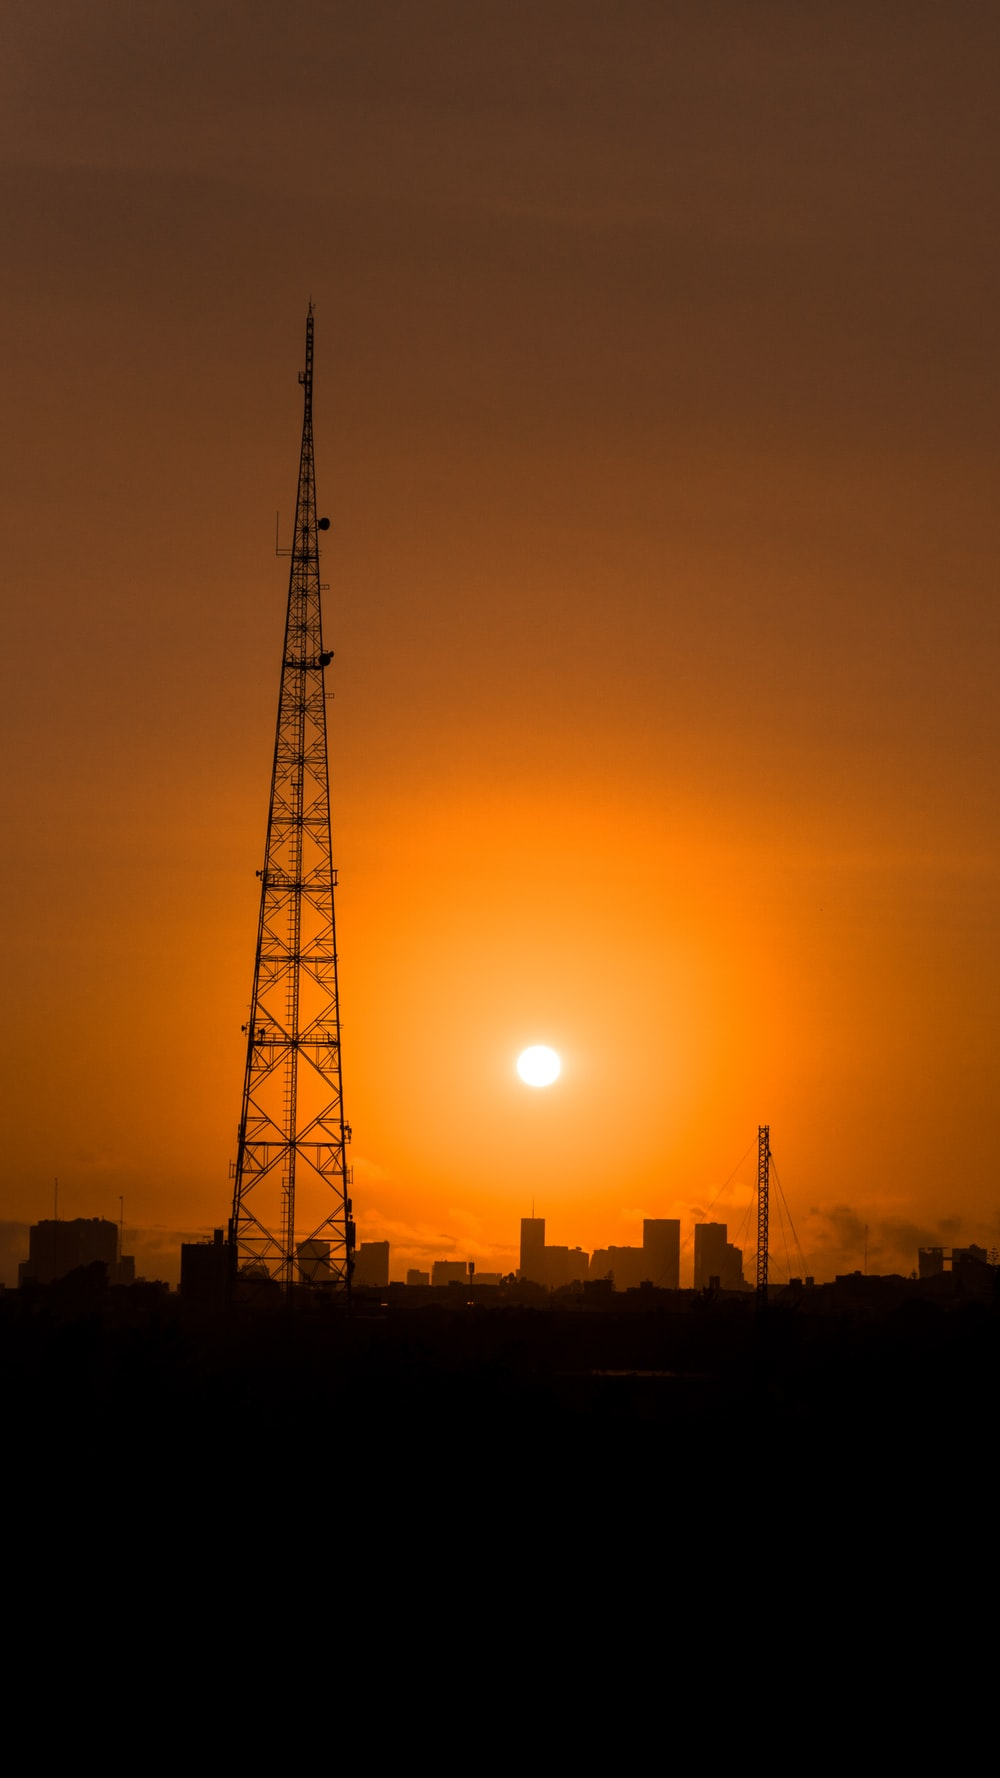 silhouette of metal tower during golden hour